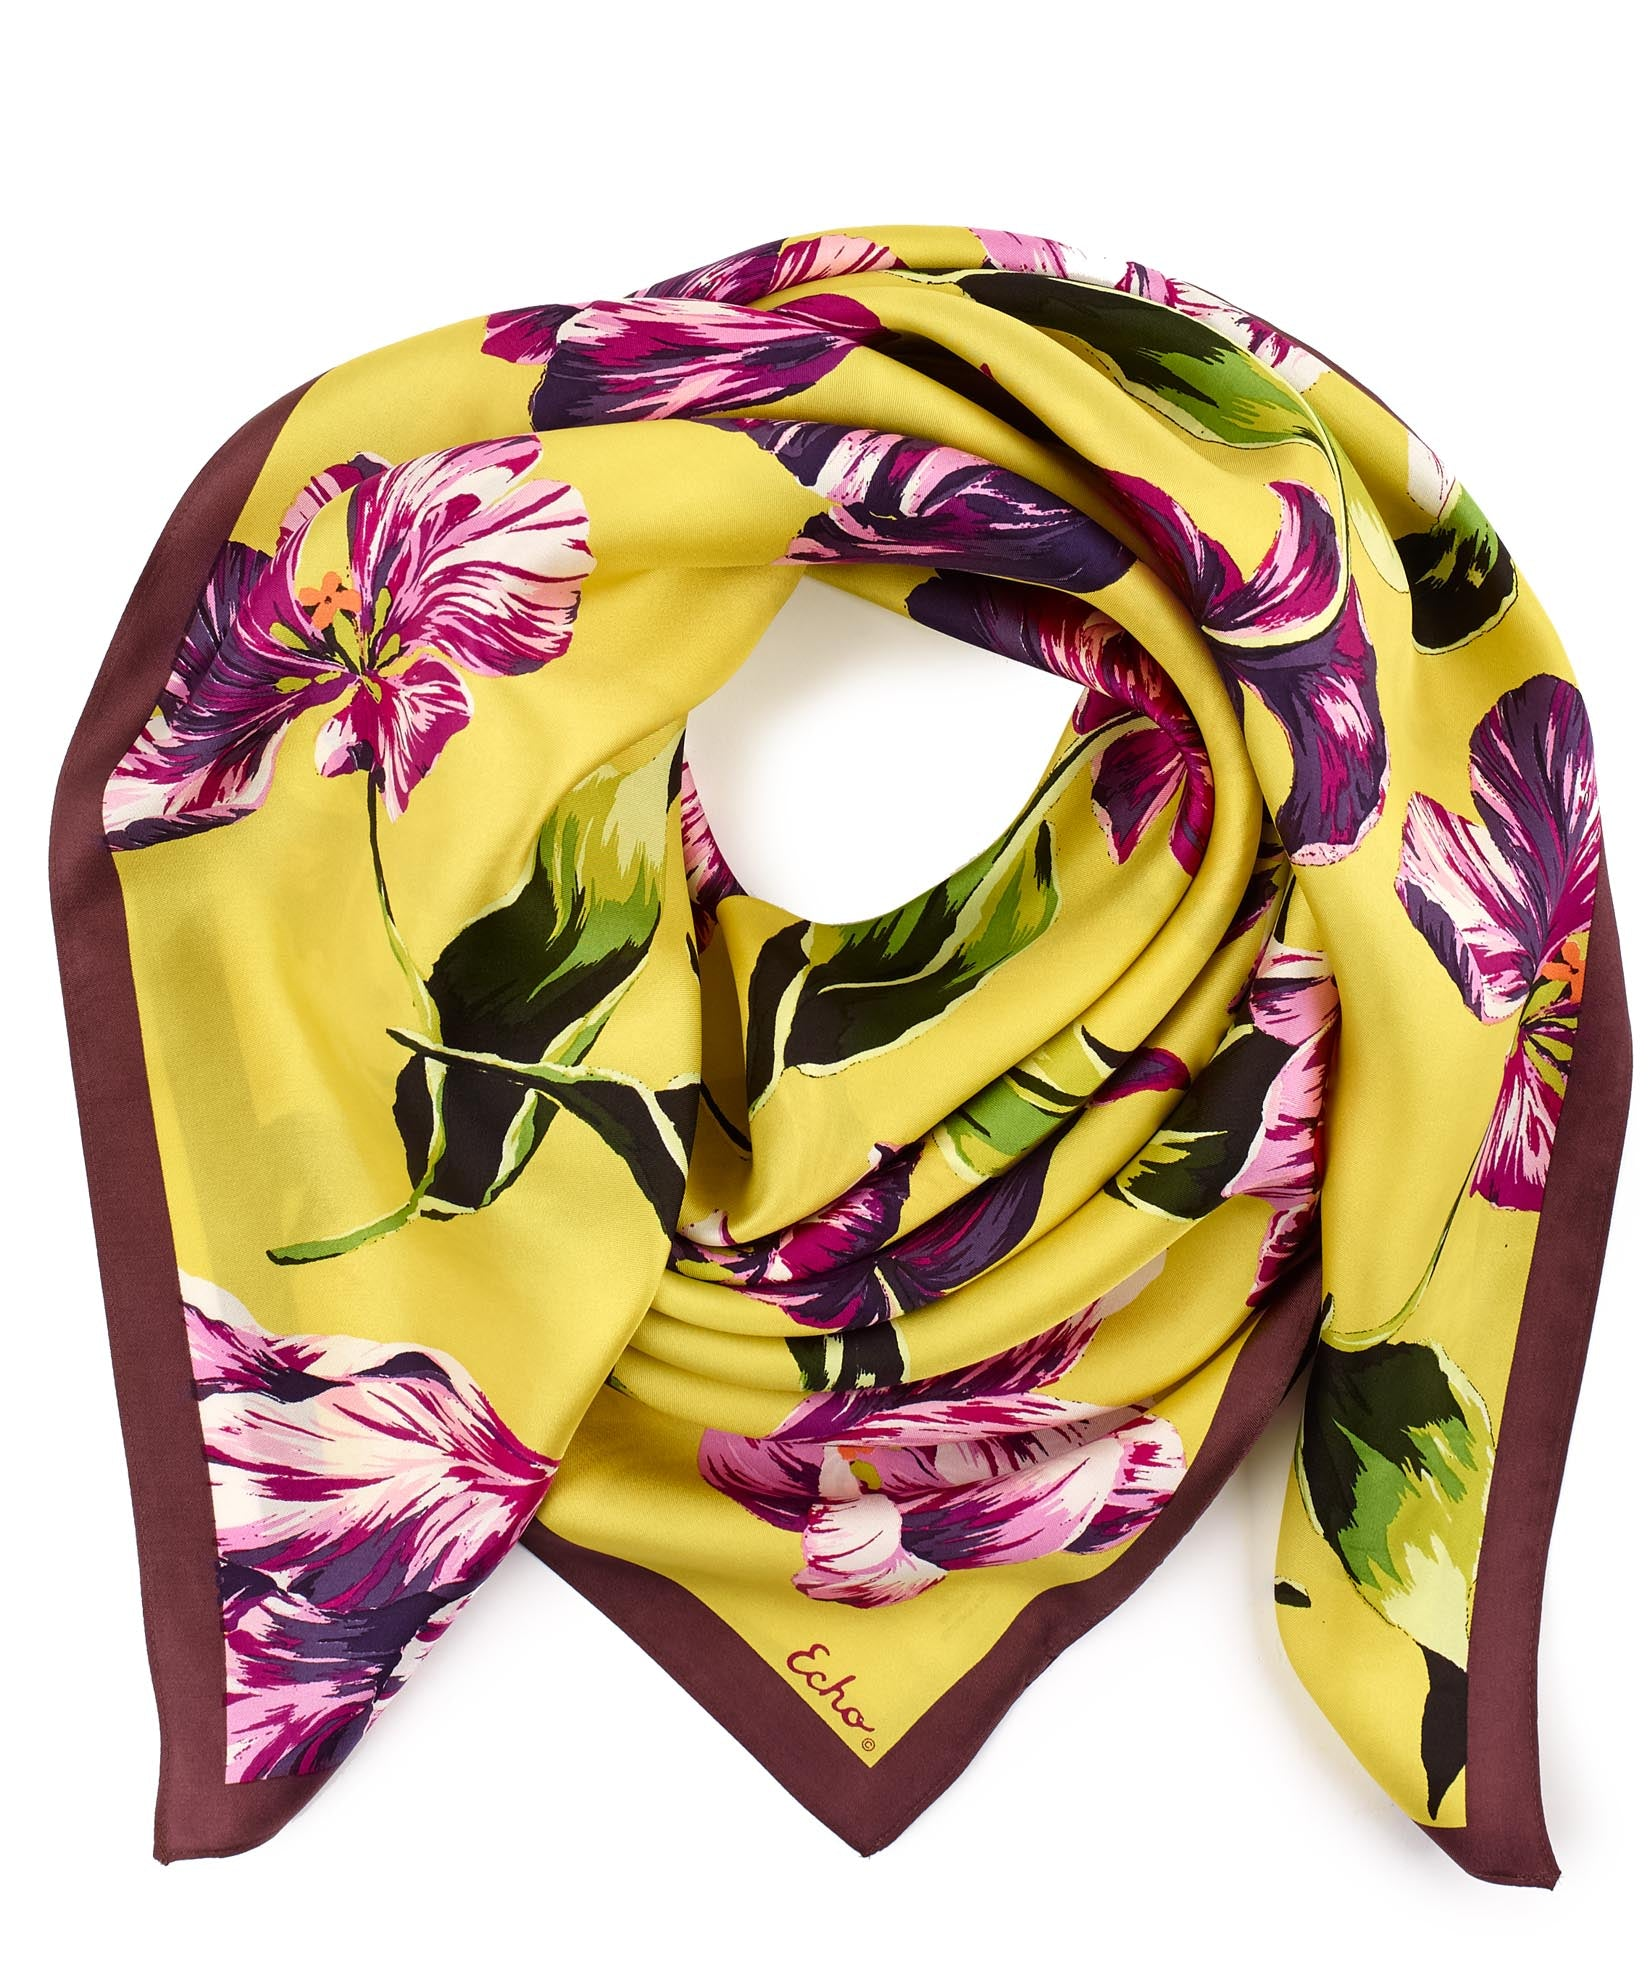 Warm Olive - Buckingham Tulips Silk Square